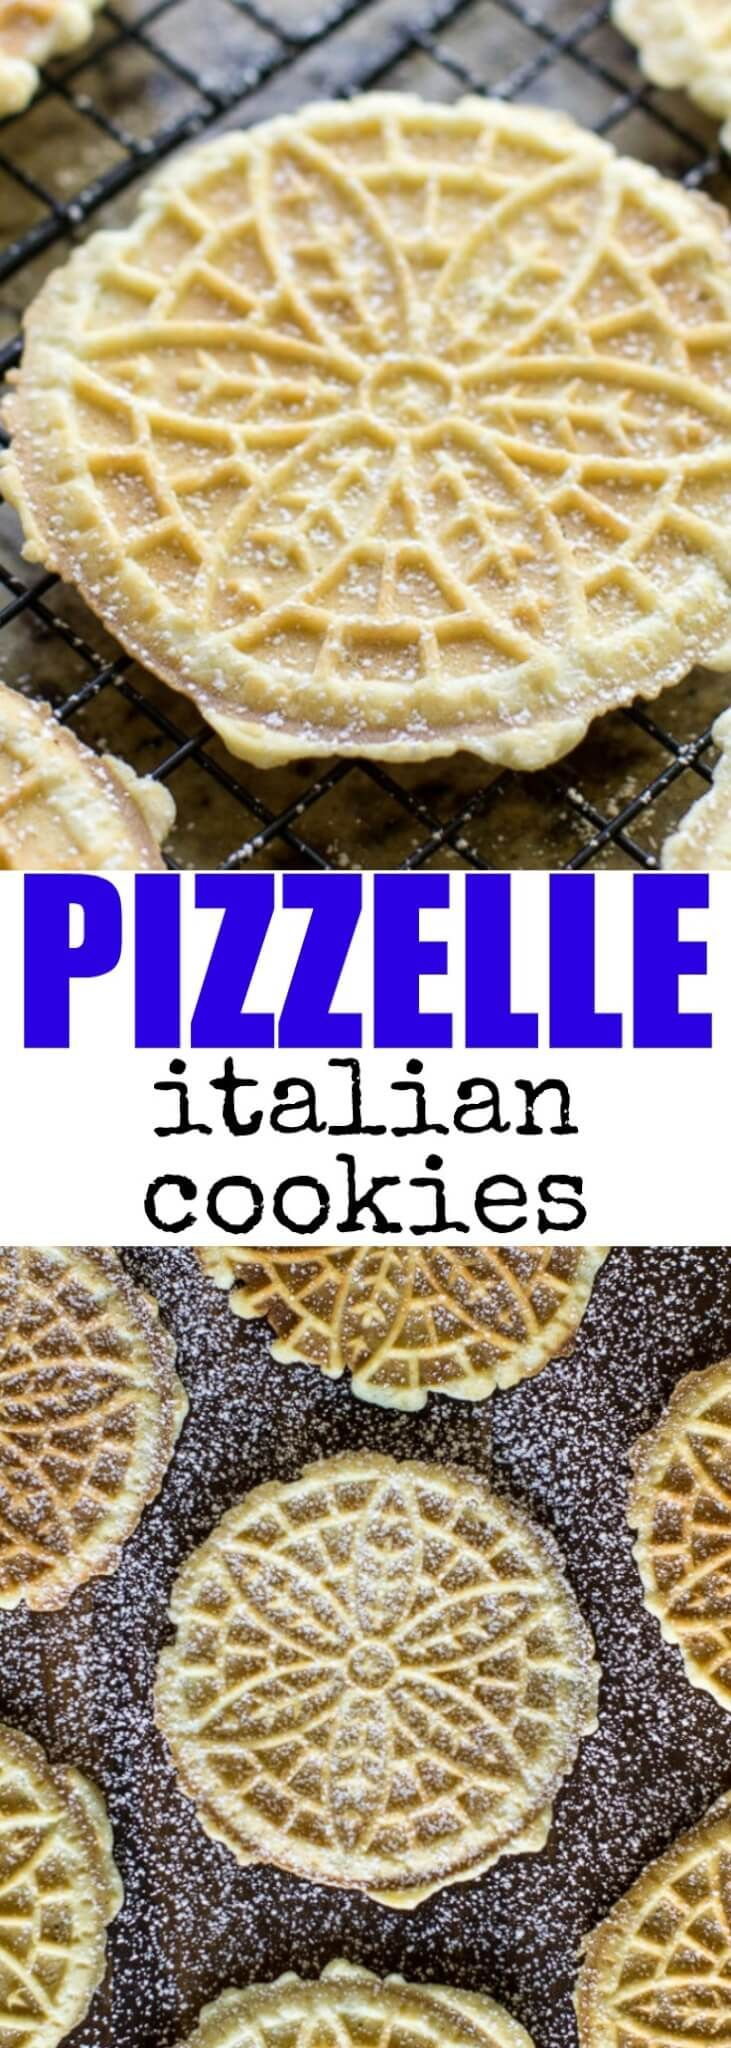 Pizzelle are nothing short of delightful. They are lightly sweetened with a crisp texture, easy to make, and perfect for holiday gift-giving.